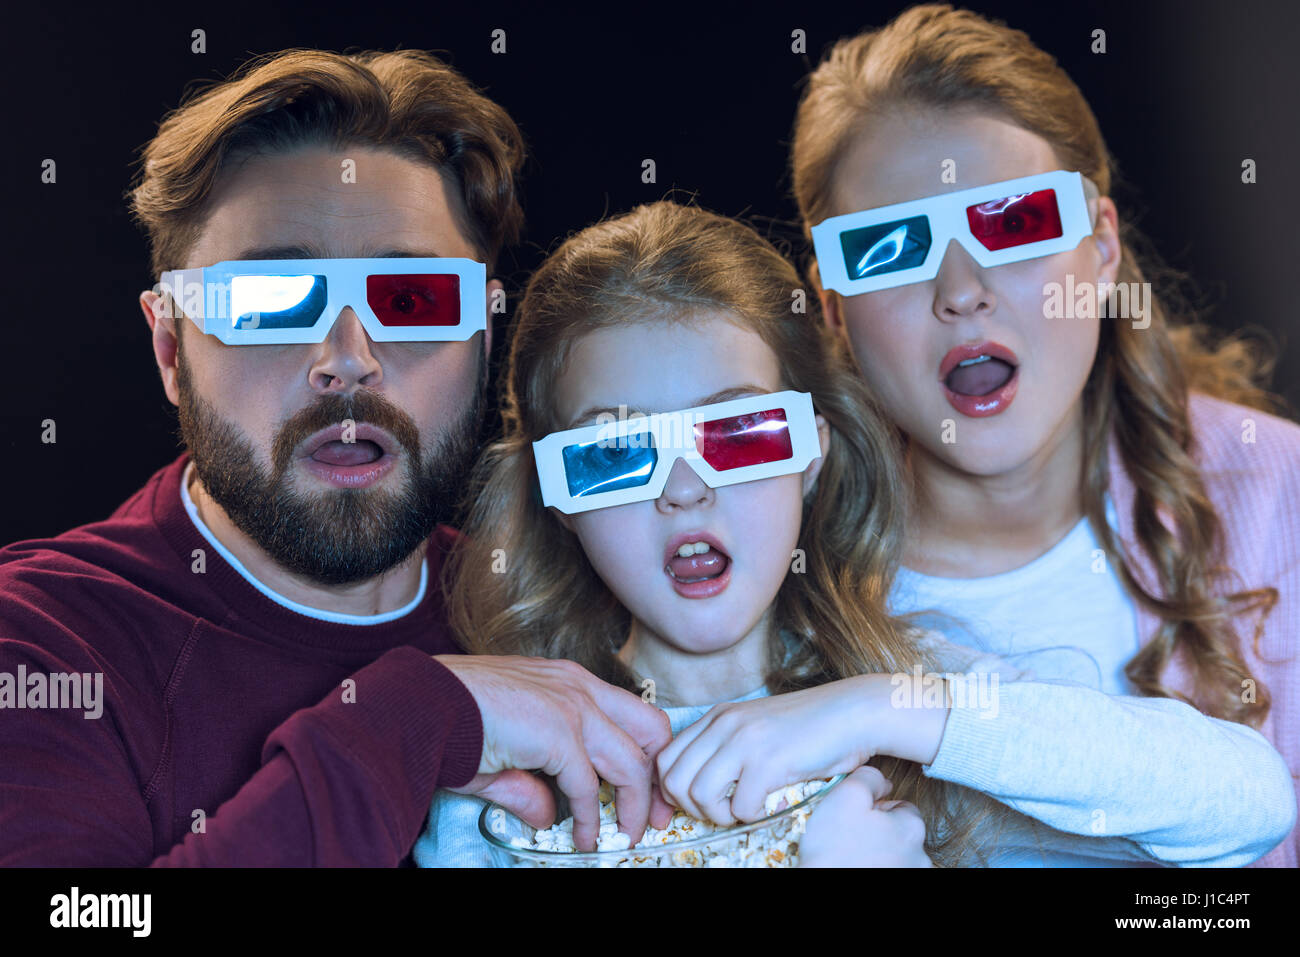 Shocked family in 3d glasses watching movie and eating popcorn from bowl - Stock Image